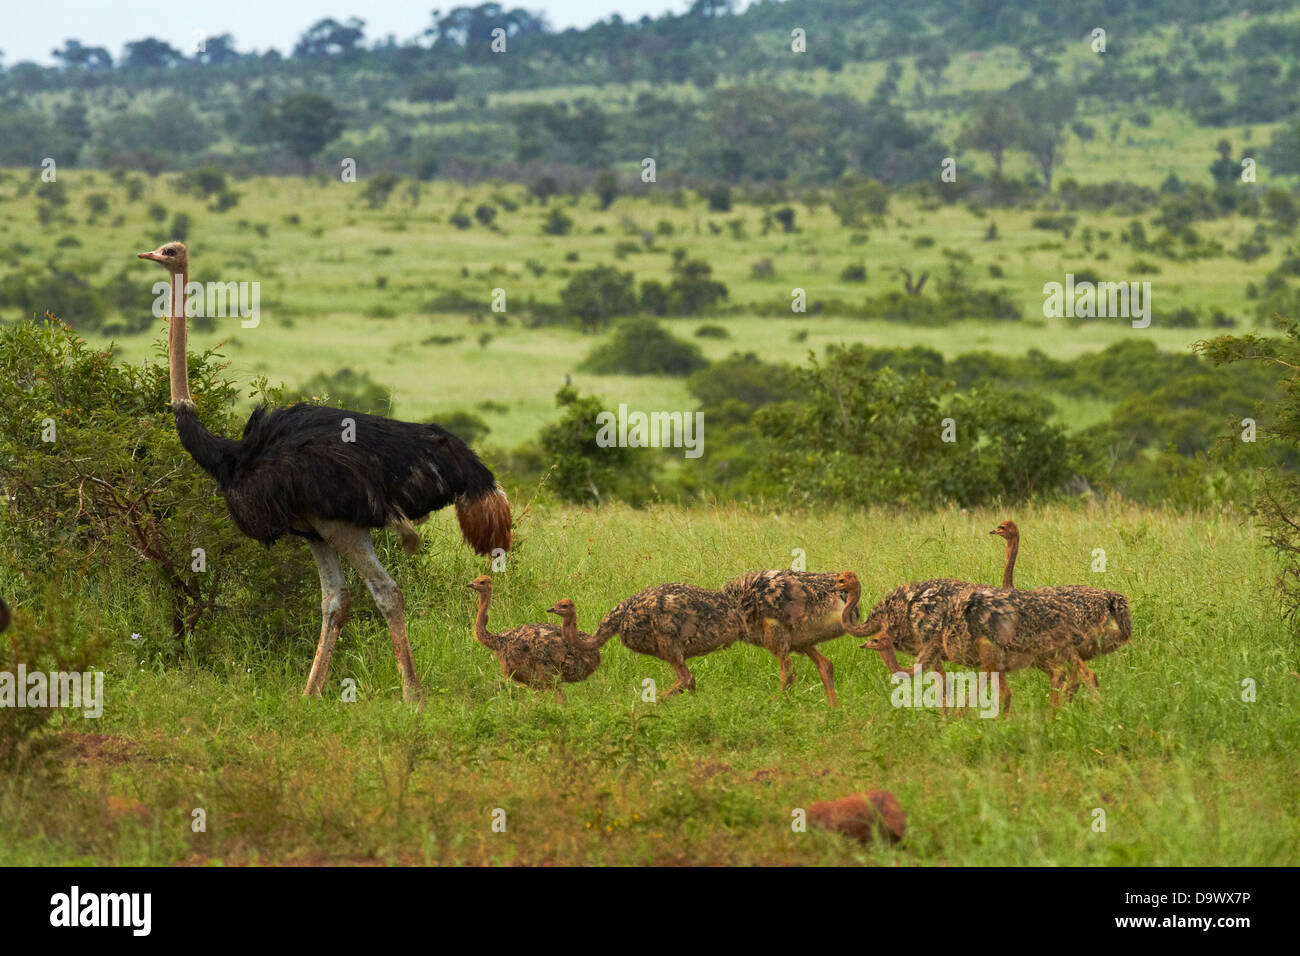 Ostrich (Struthio camelus) and chicks, Kruger National Park, South Africa - Stock Image